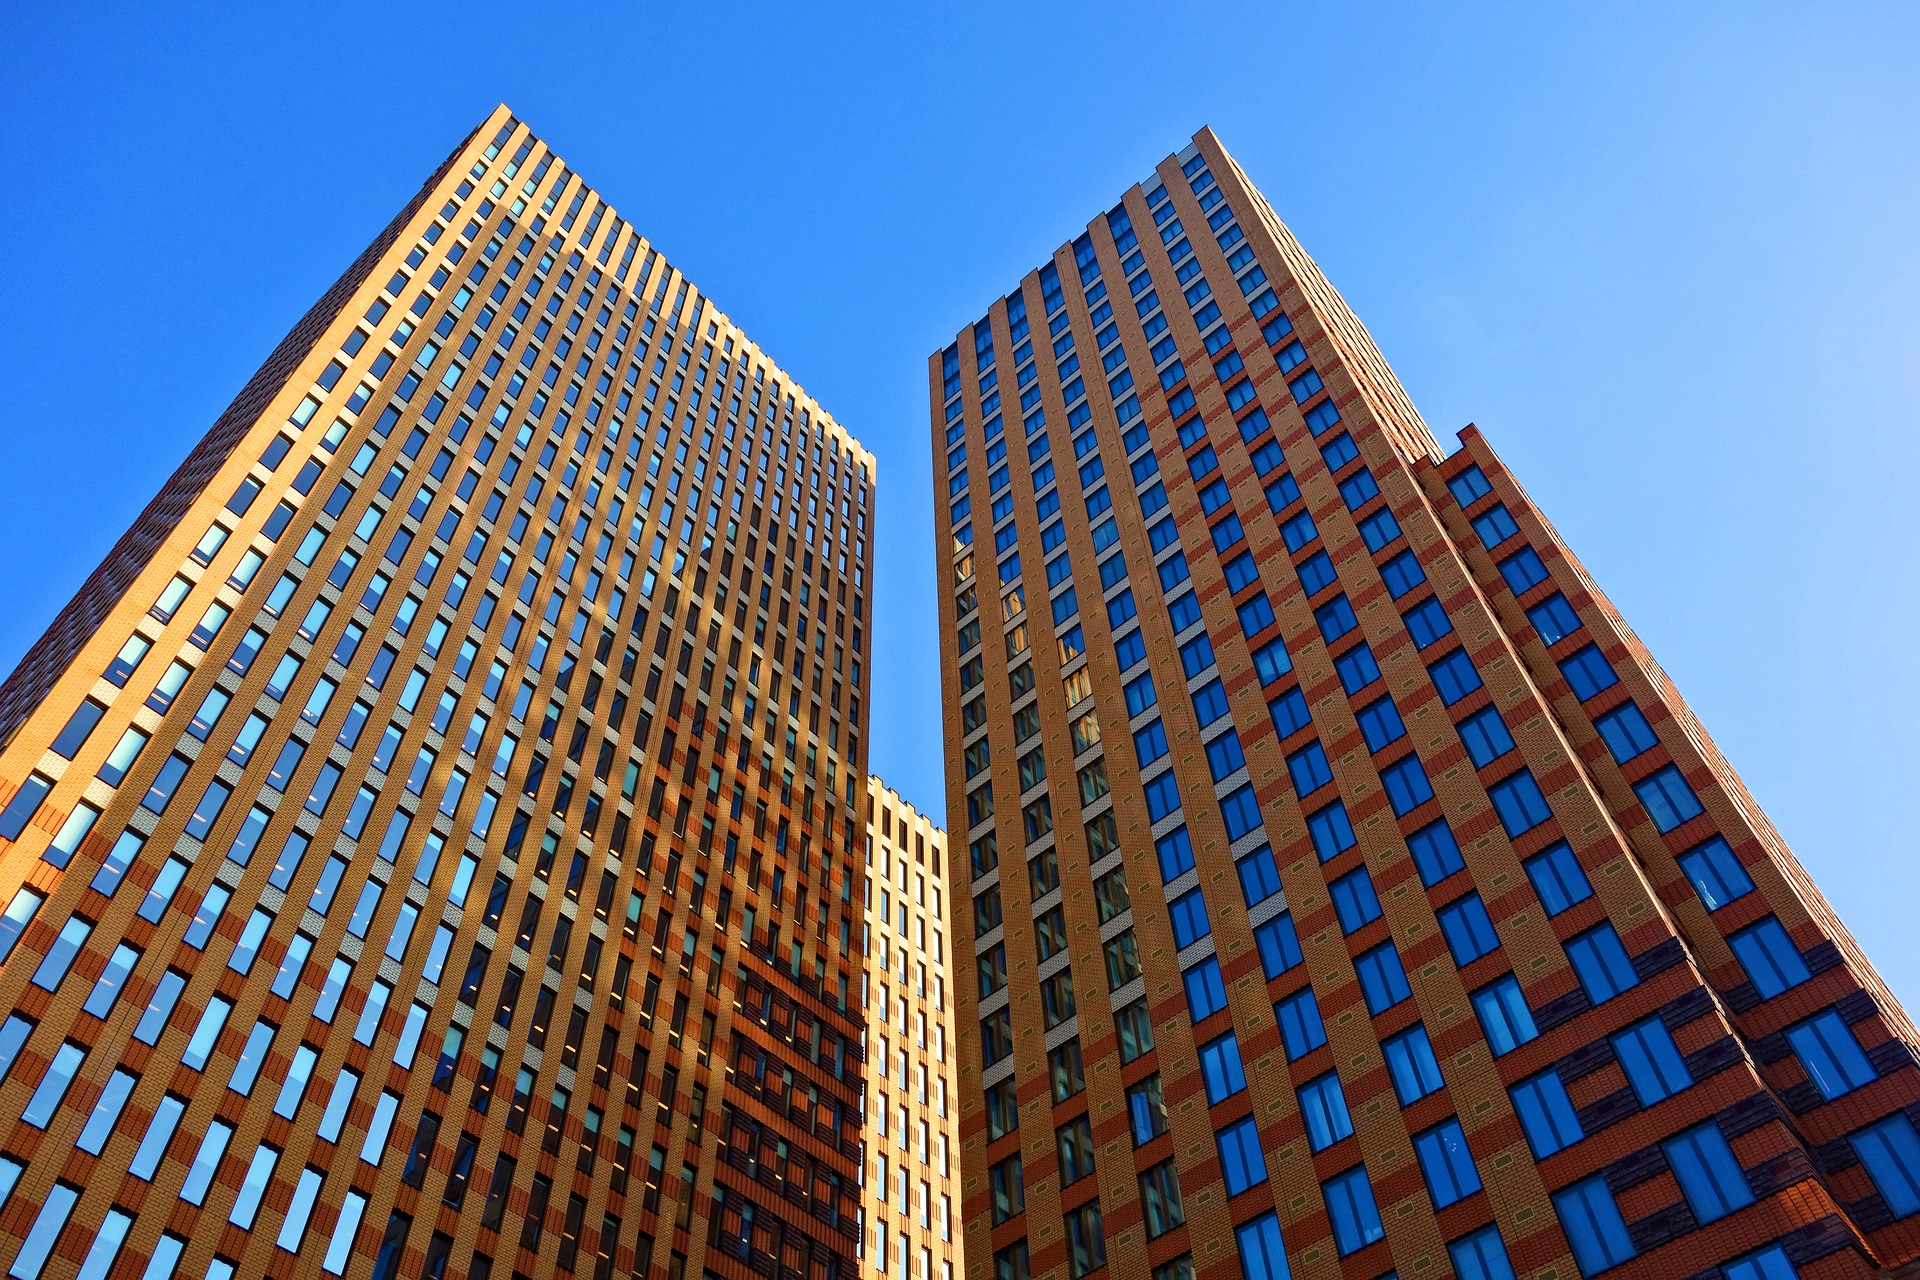 Two office tower buildings in brick and glass for plumbing and gas services for business or building owners on the One Stop Plumbing commercial Plumbing page